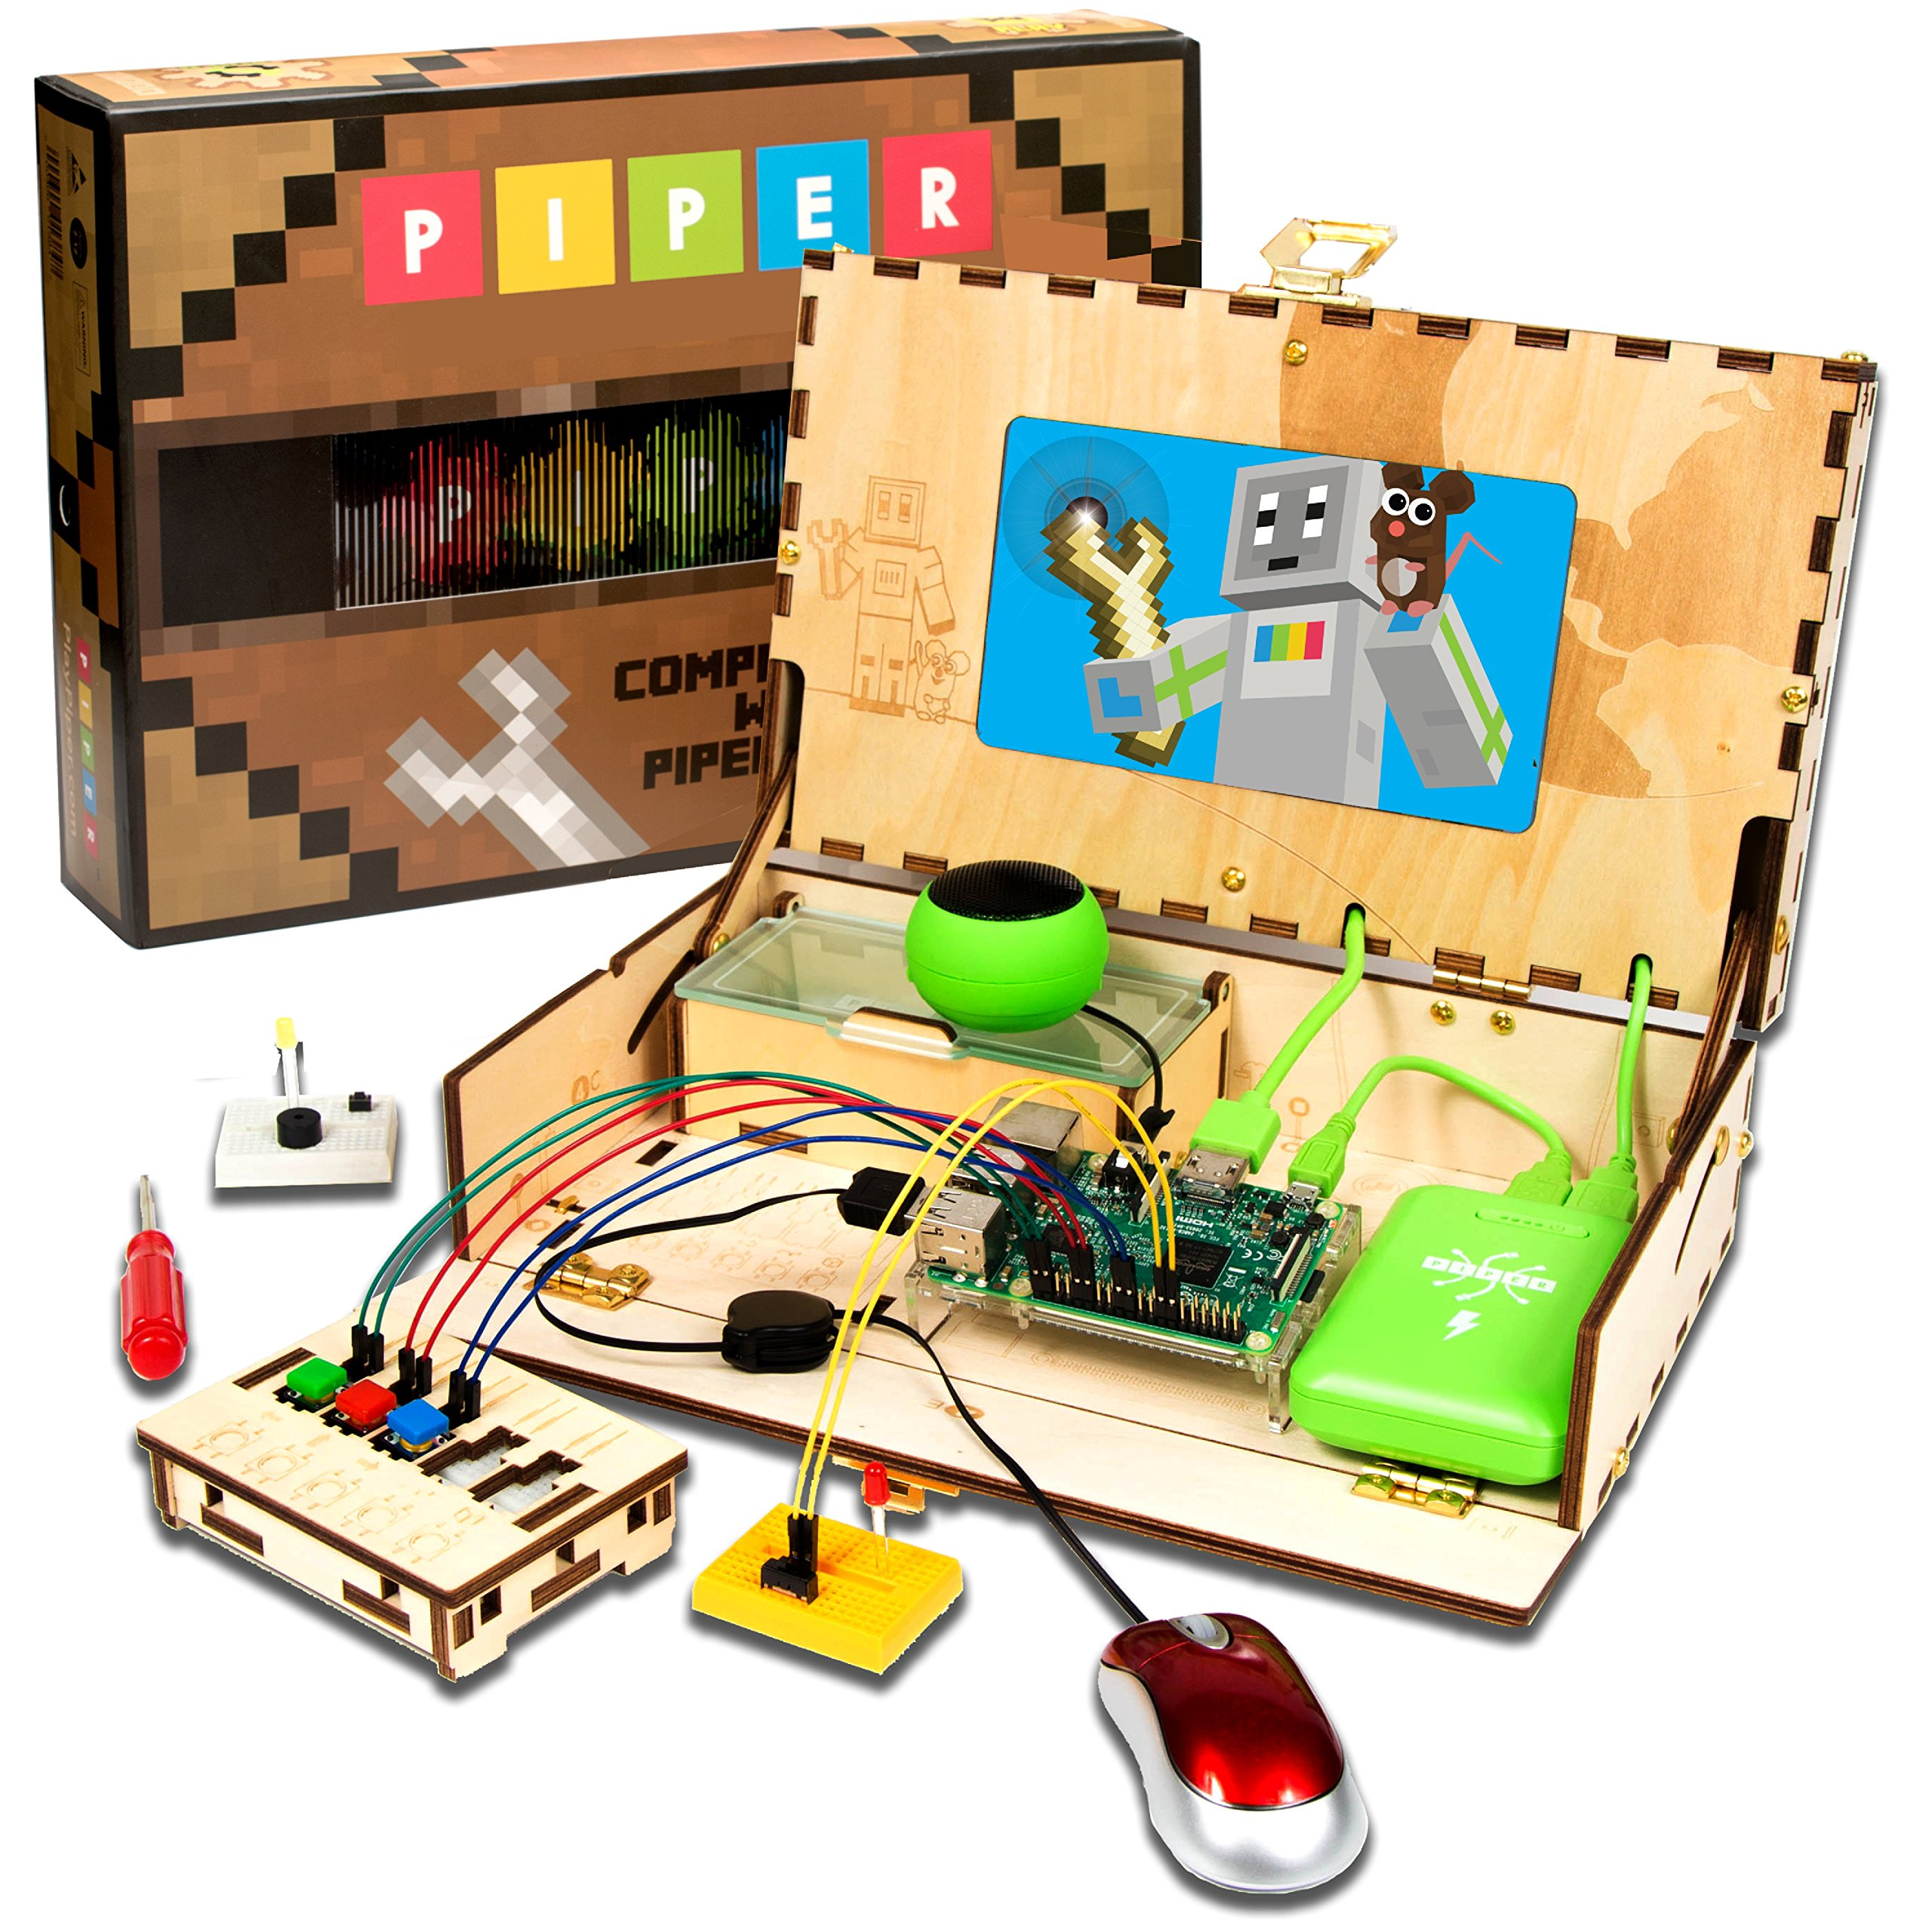 Piper Computer Kit | with Minecraft Raspberry Pi edition | Educational Computer that Teaches STEM and Coding | Tech Toy of the Year 2017